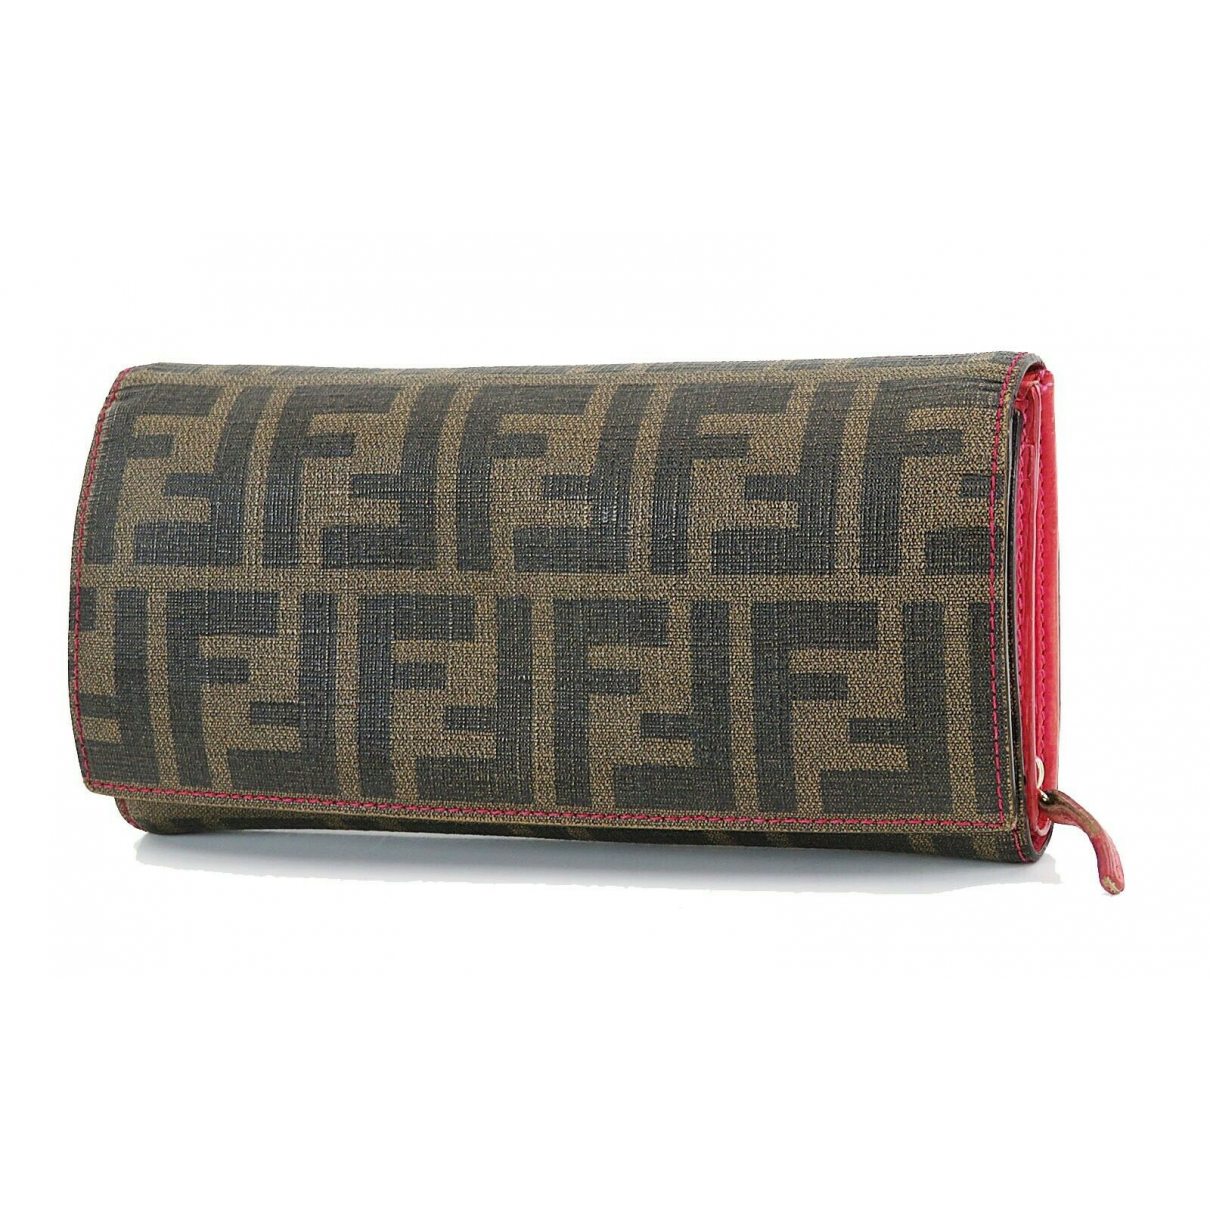 Fendi \N Leather Clutch bag for Women \N